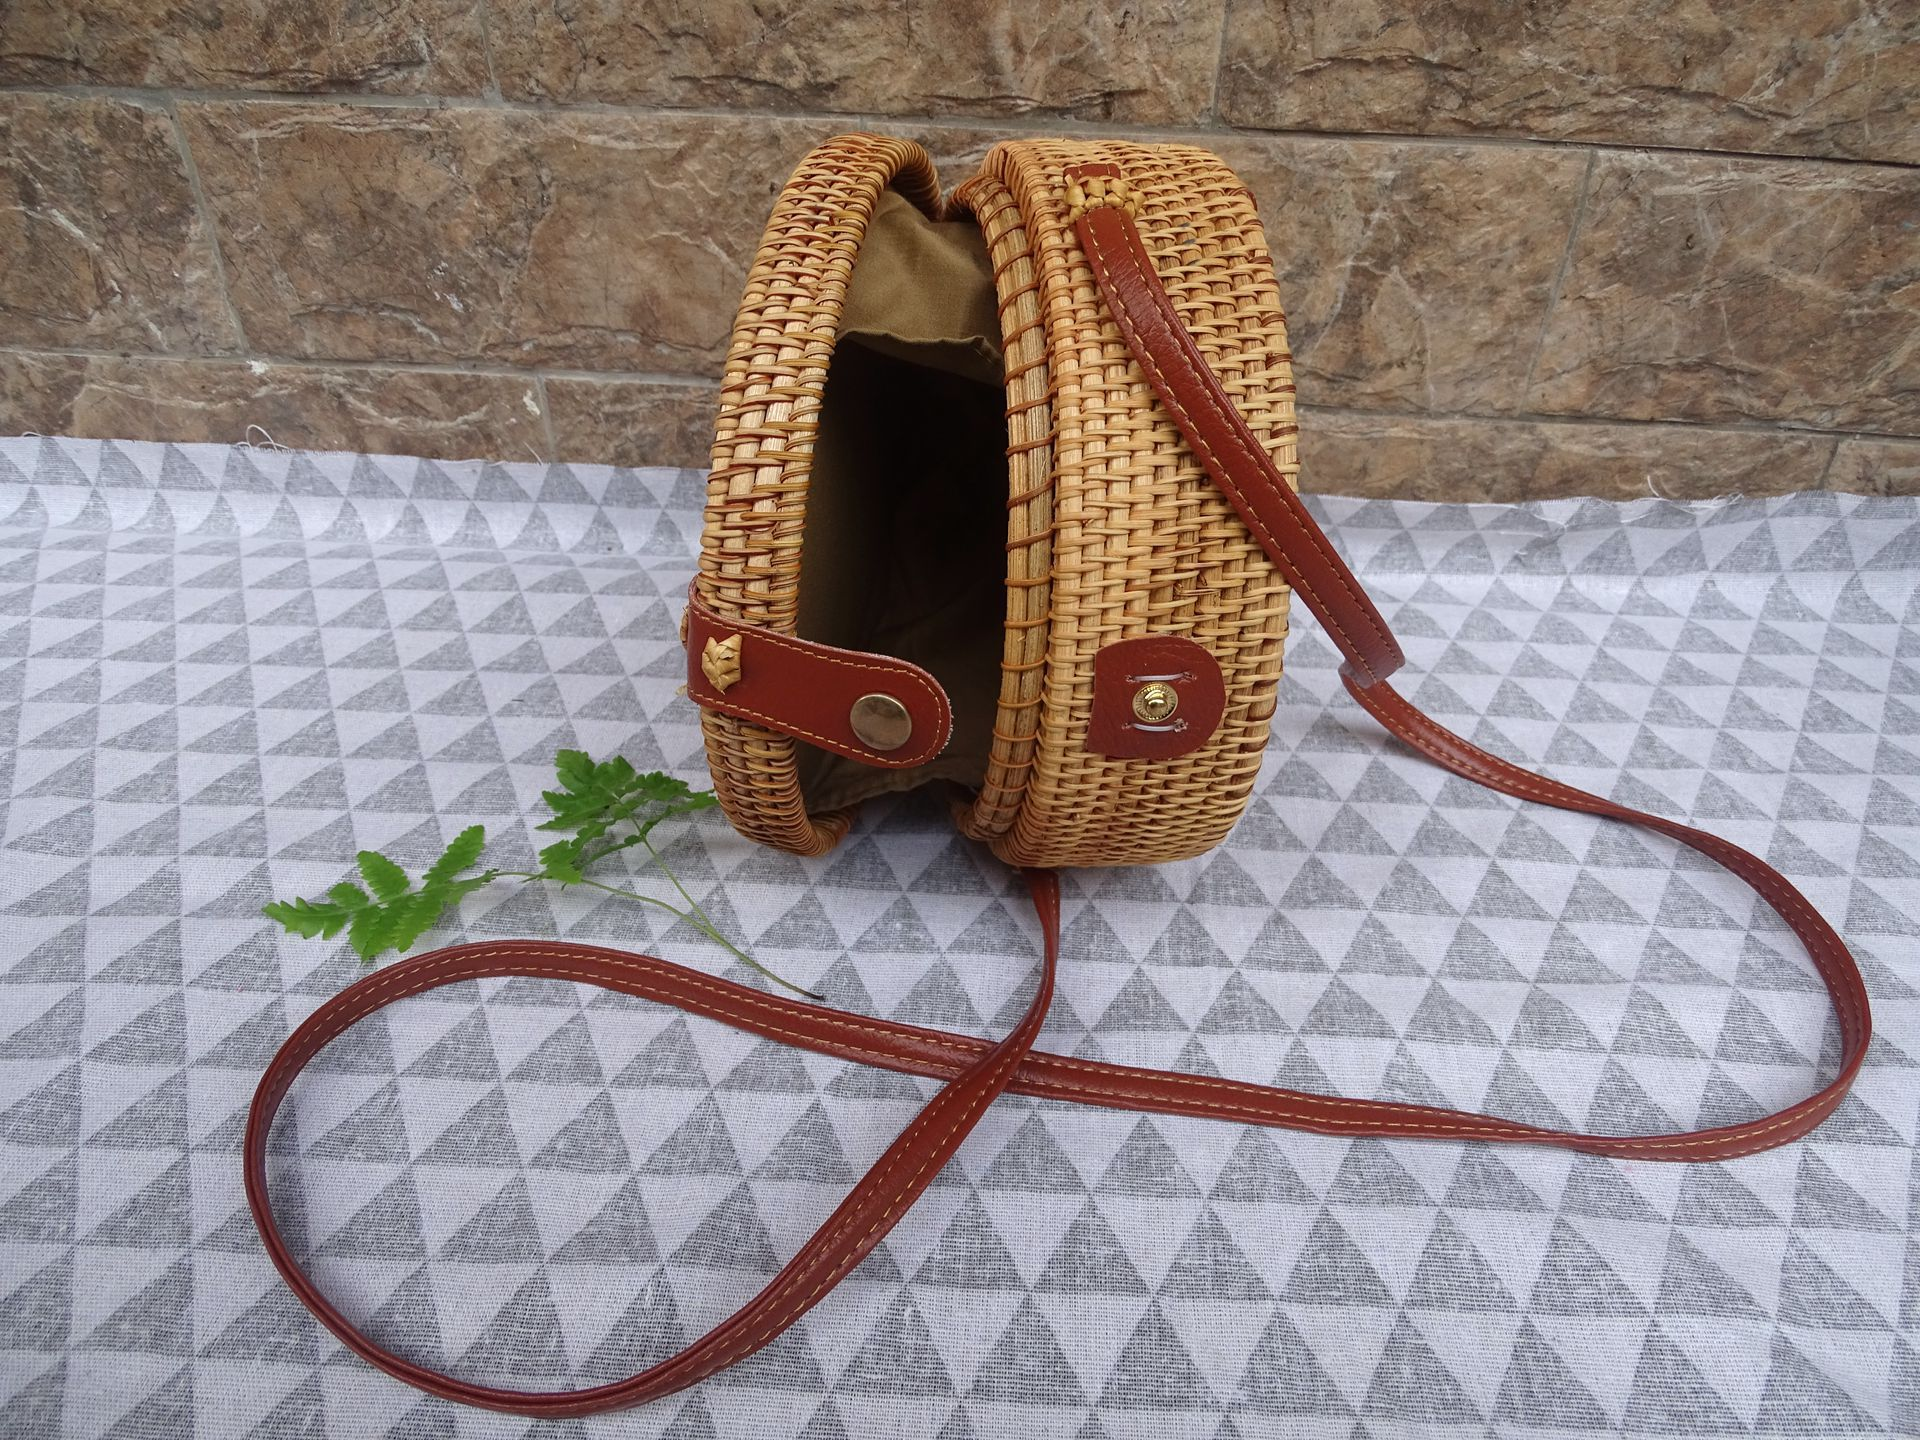 fashion woven beach bag angedanlia on sale for summer-3